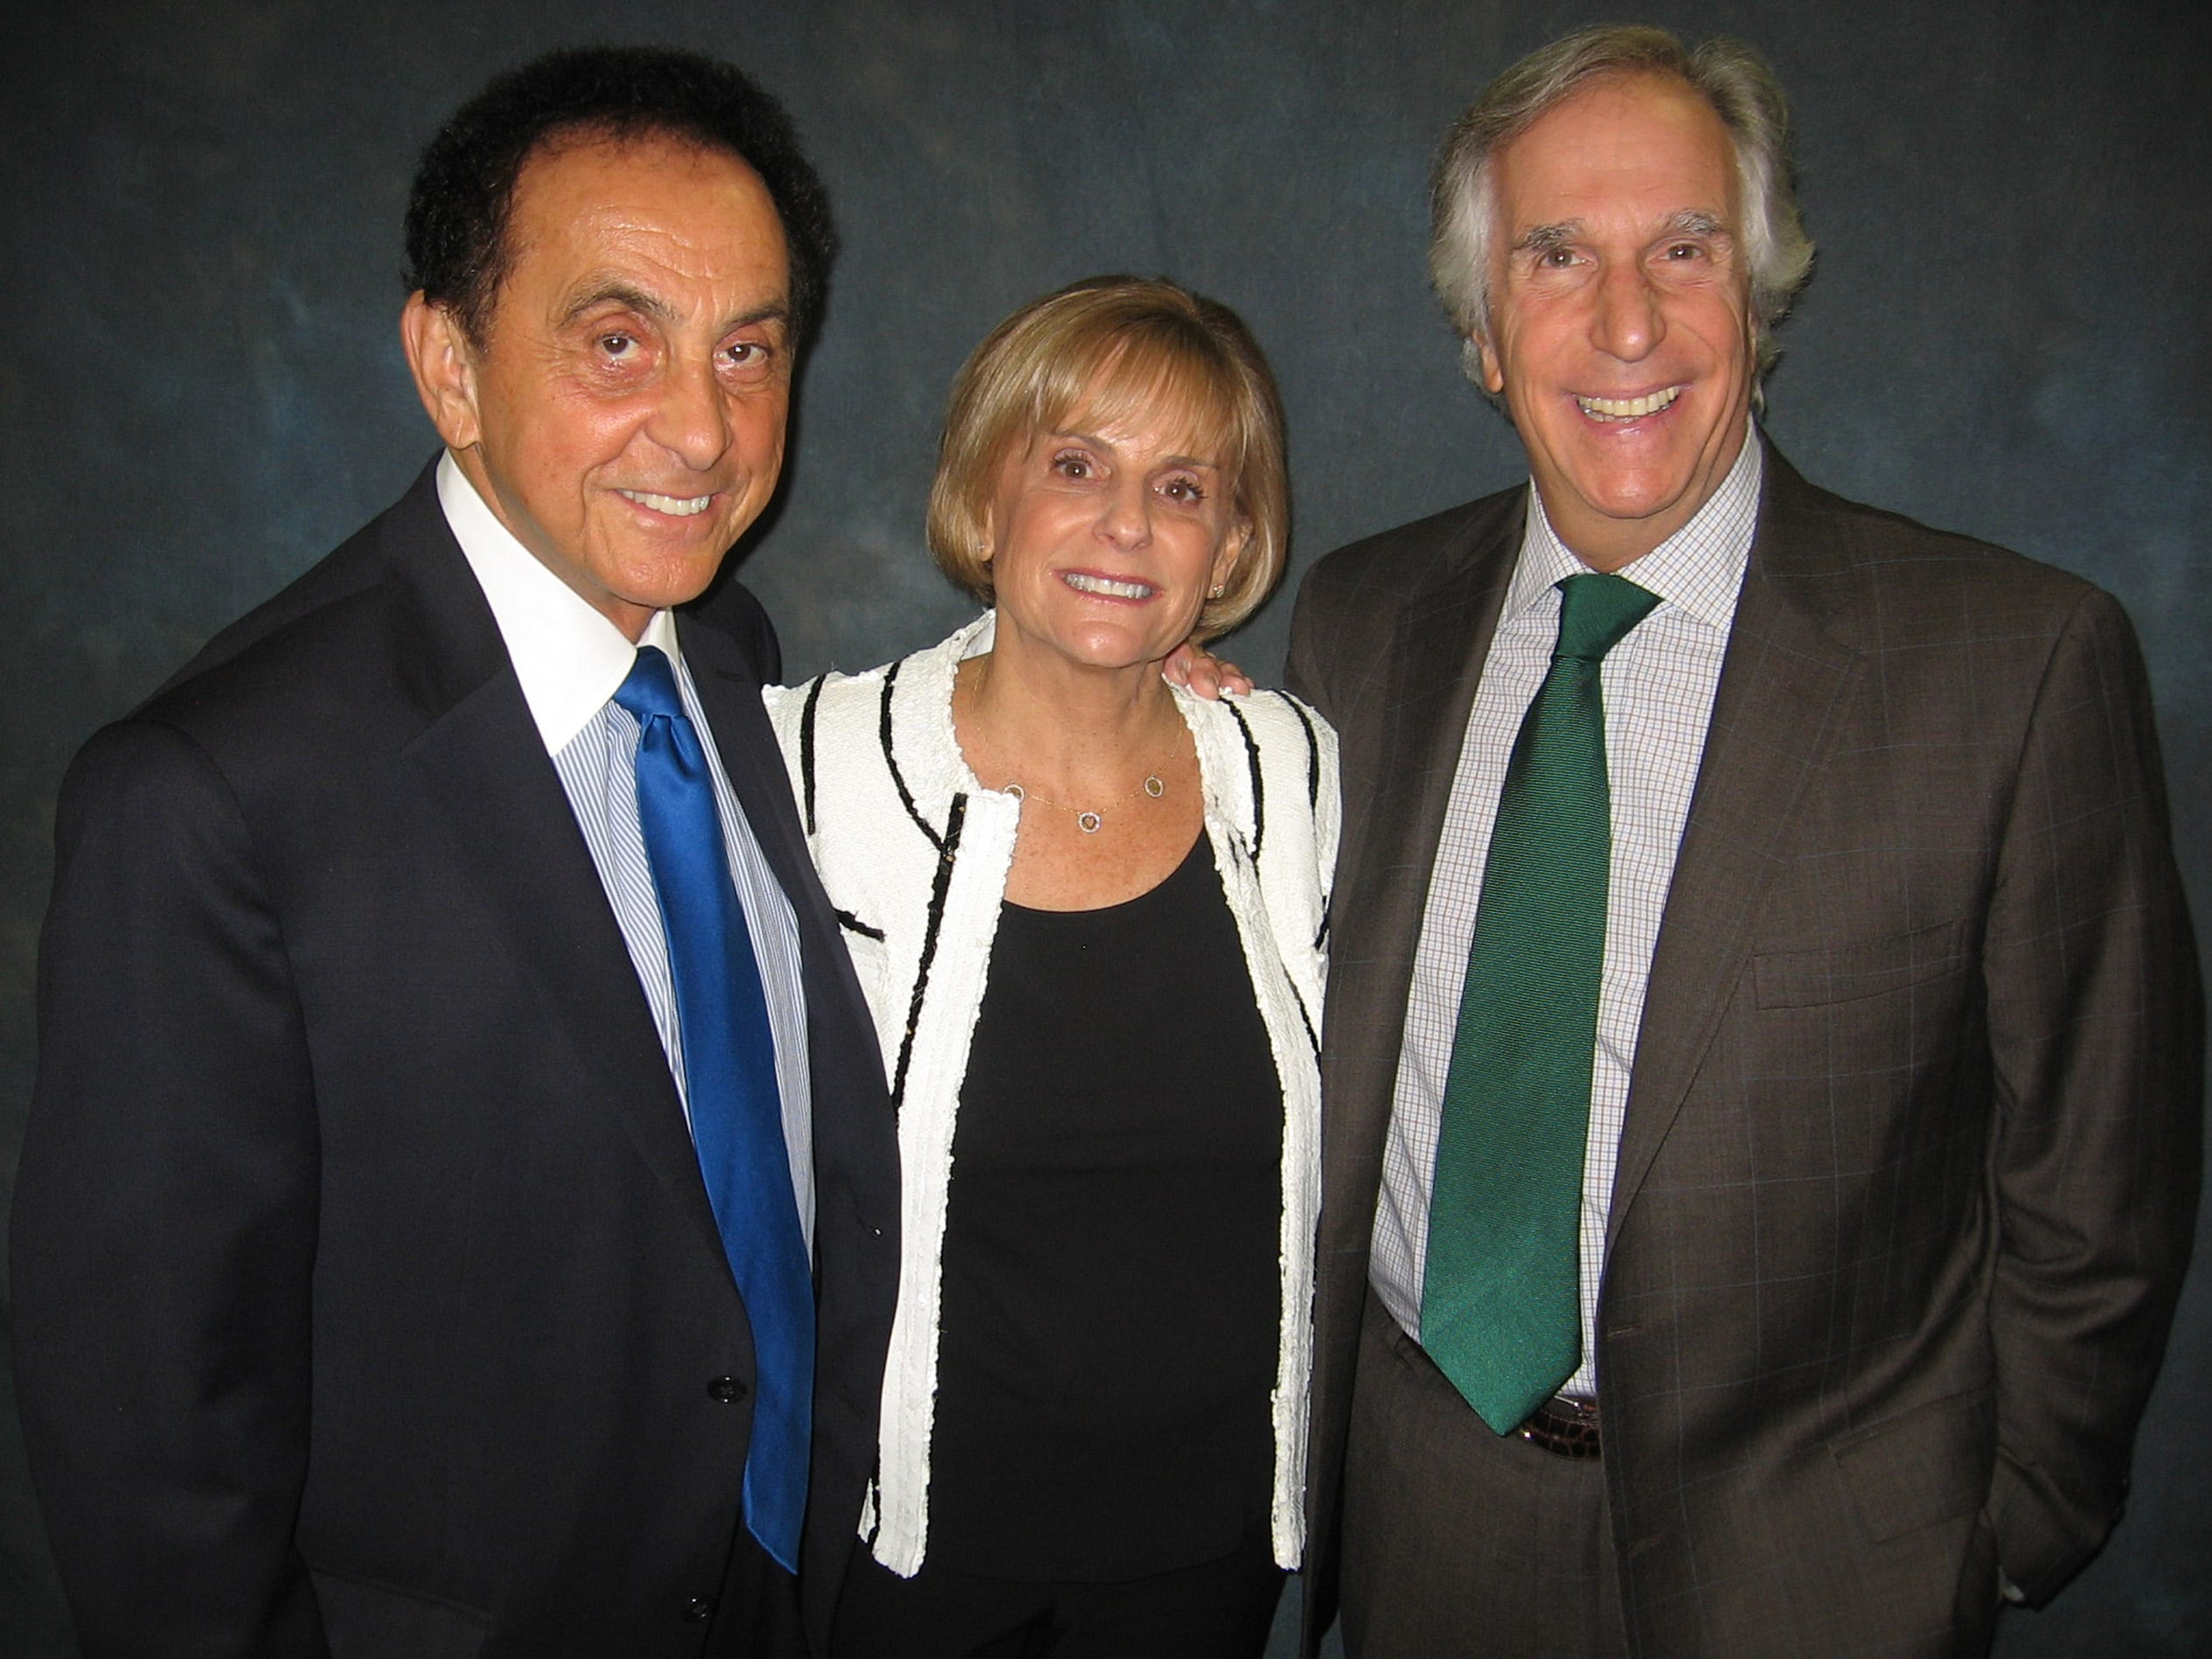 Sept. 23, 2012 - Henry Winkler was the guest speaker at the Memphis Jewish Home & Rehab celebration at Baron Hirsch Synagogue. George Klein was master of ceremonies and Geri Lansky is president of the home.